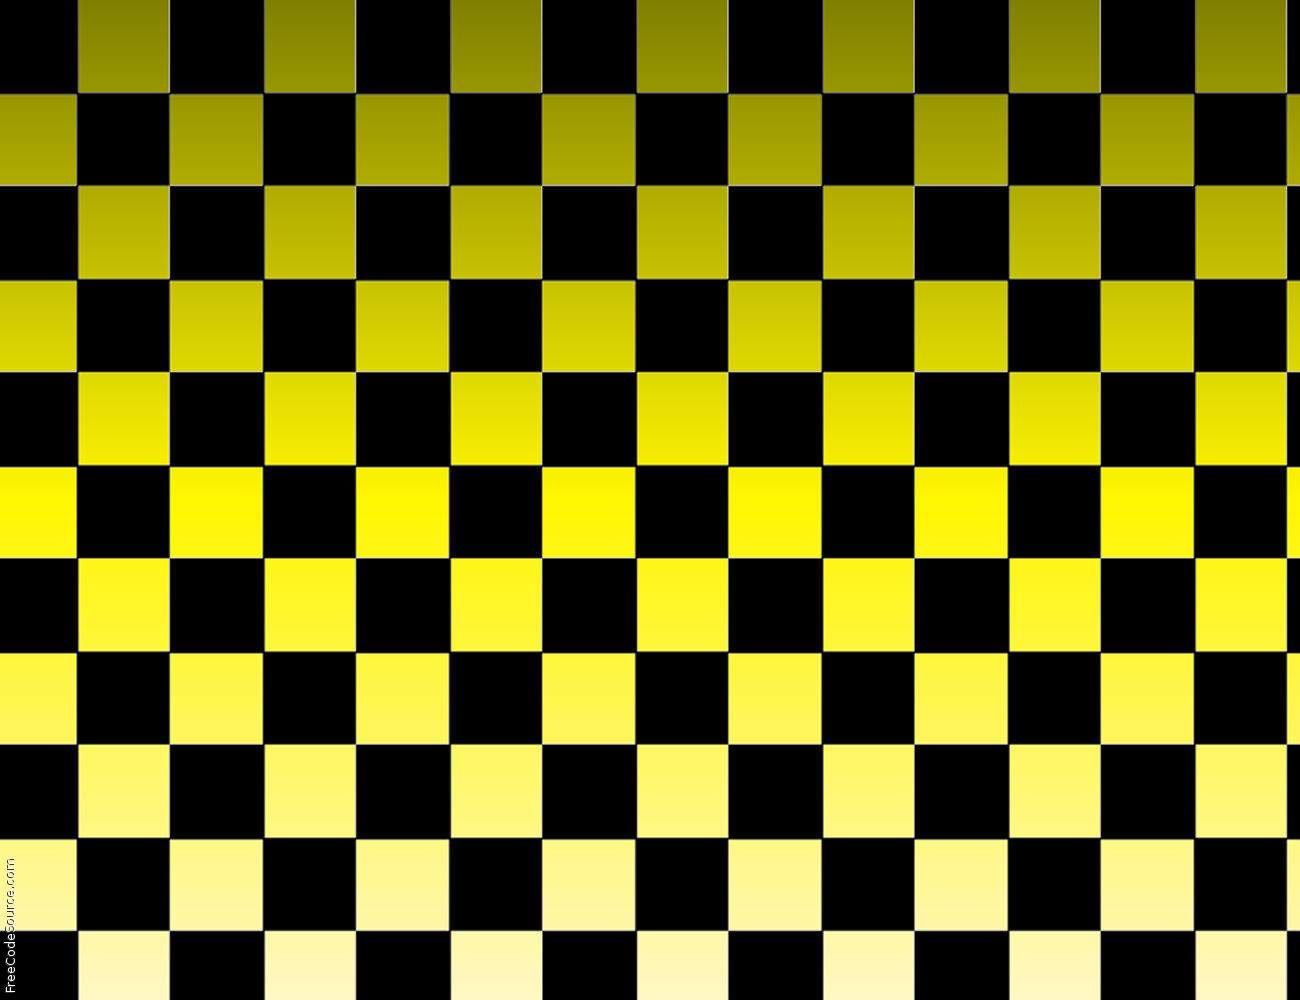 48+] Black and Yellow HD Wallpaper on